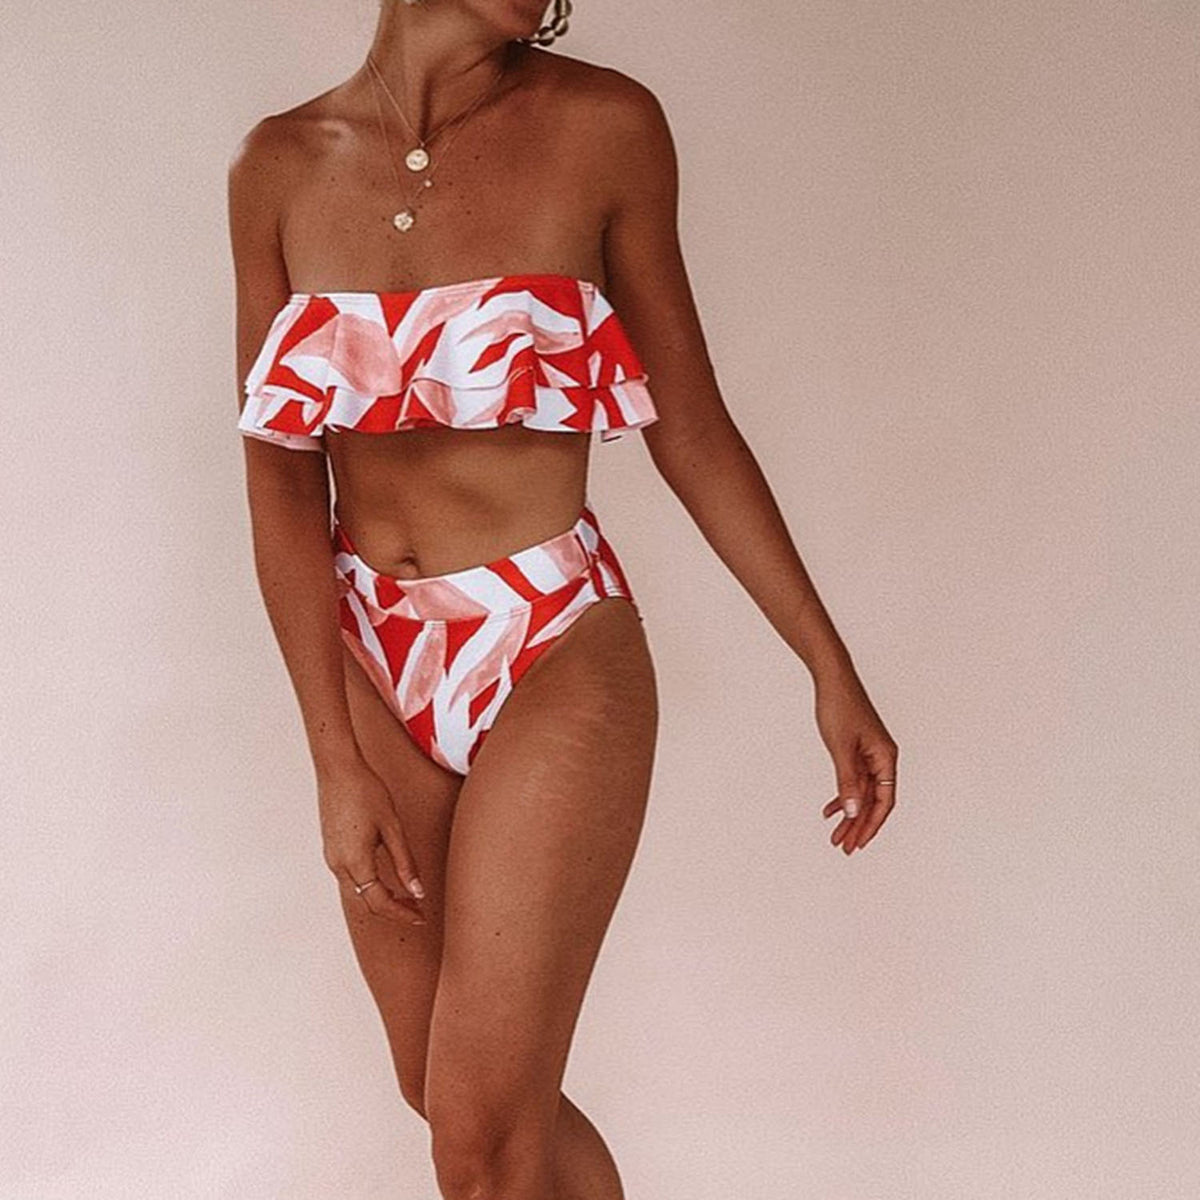 Ruffle Bandeaux High Waisted Bikini Set - worthtryit.com